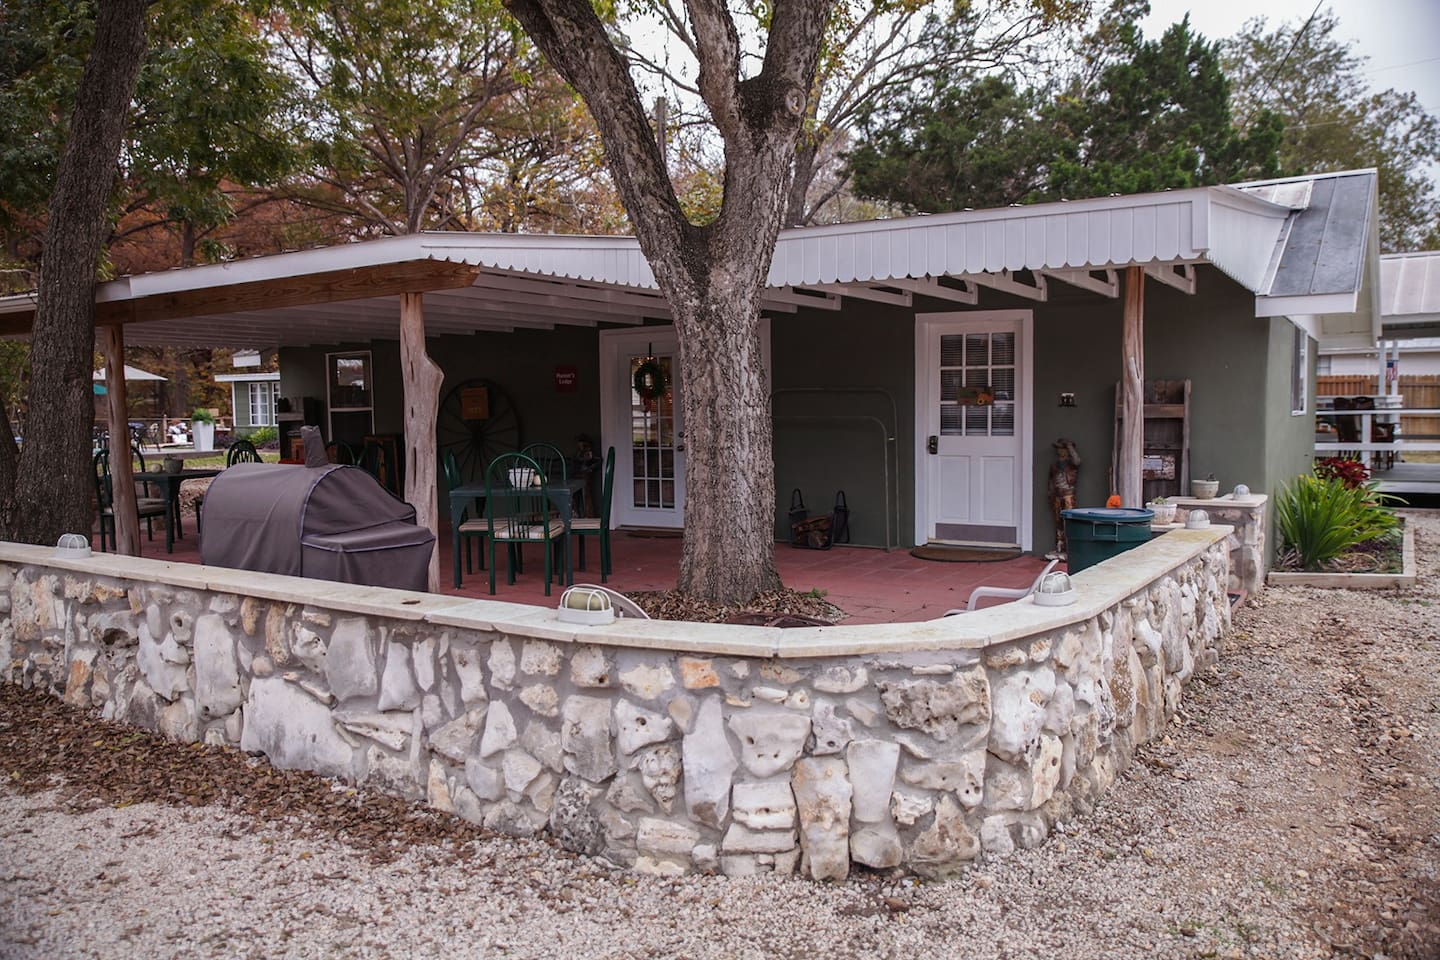 cottages hill at pet improved the ranch in image texas wimberley fischer of canyon friendly country cottage peaks